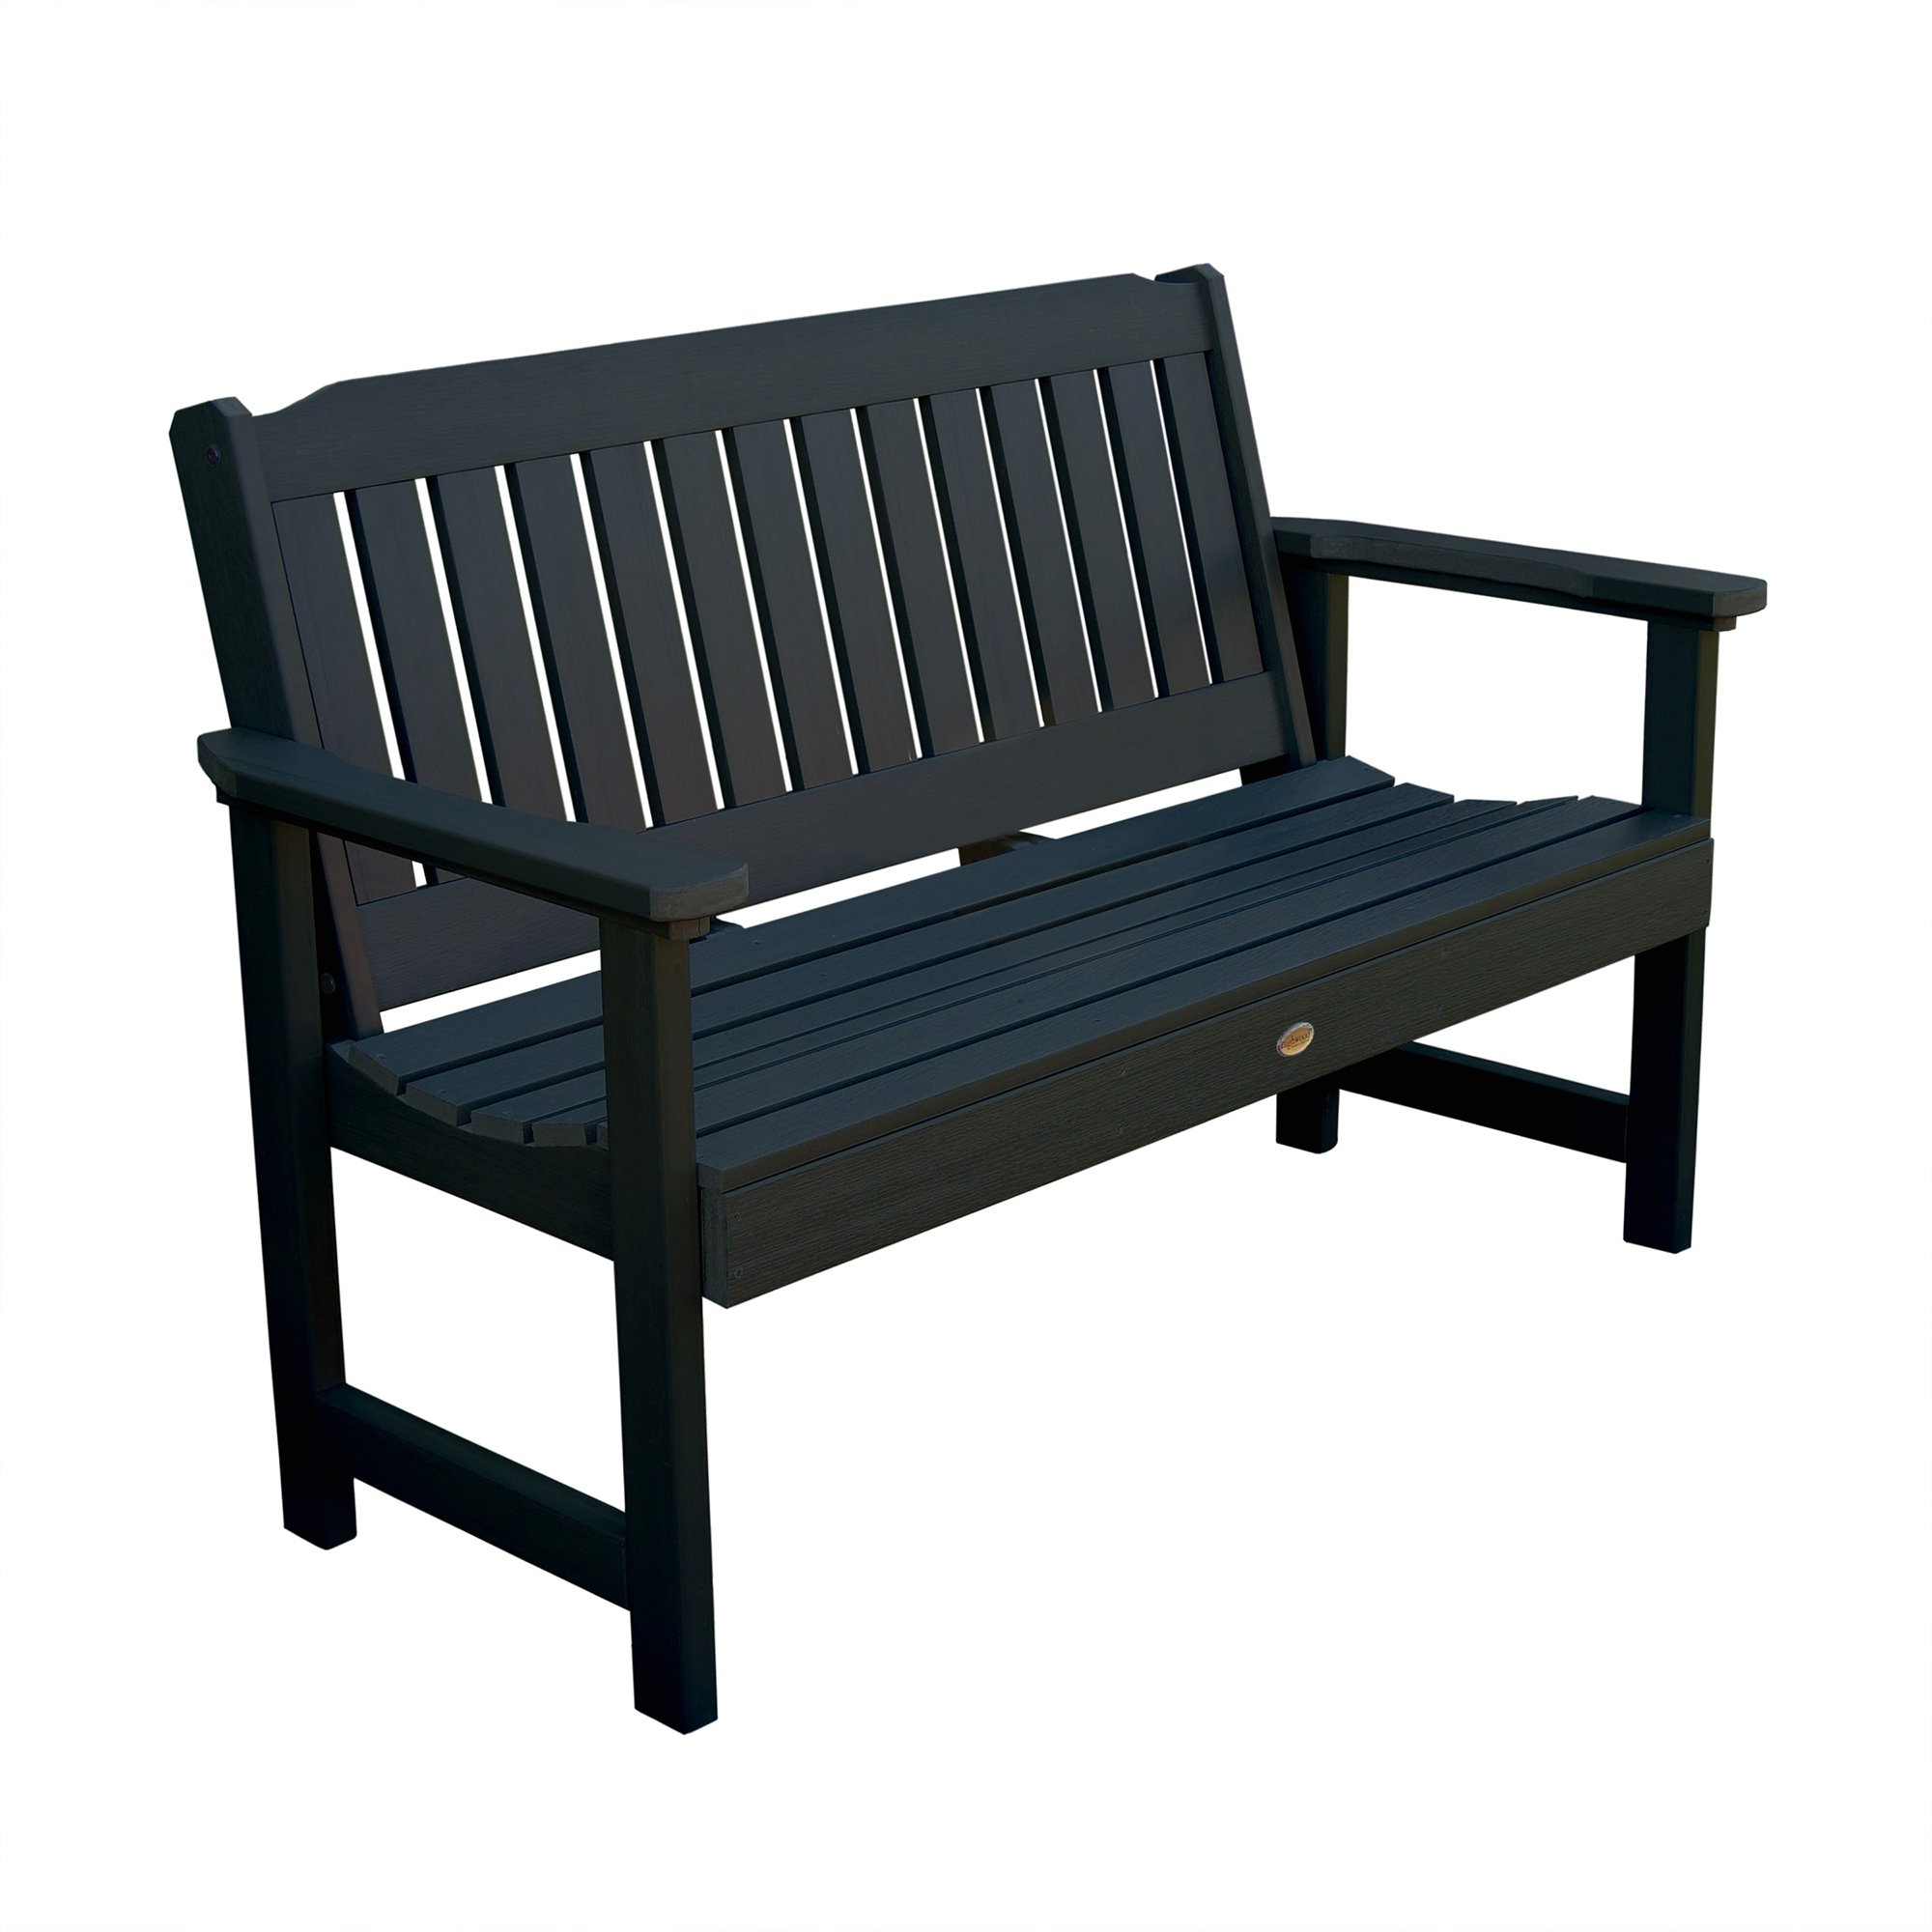 Phat Tommy Outdoor Recycled Poly Highwood Lehigh Bench – Made in the USA, Eco-Friendly Patio Furniture